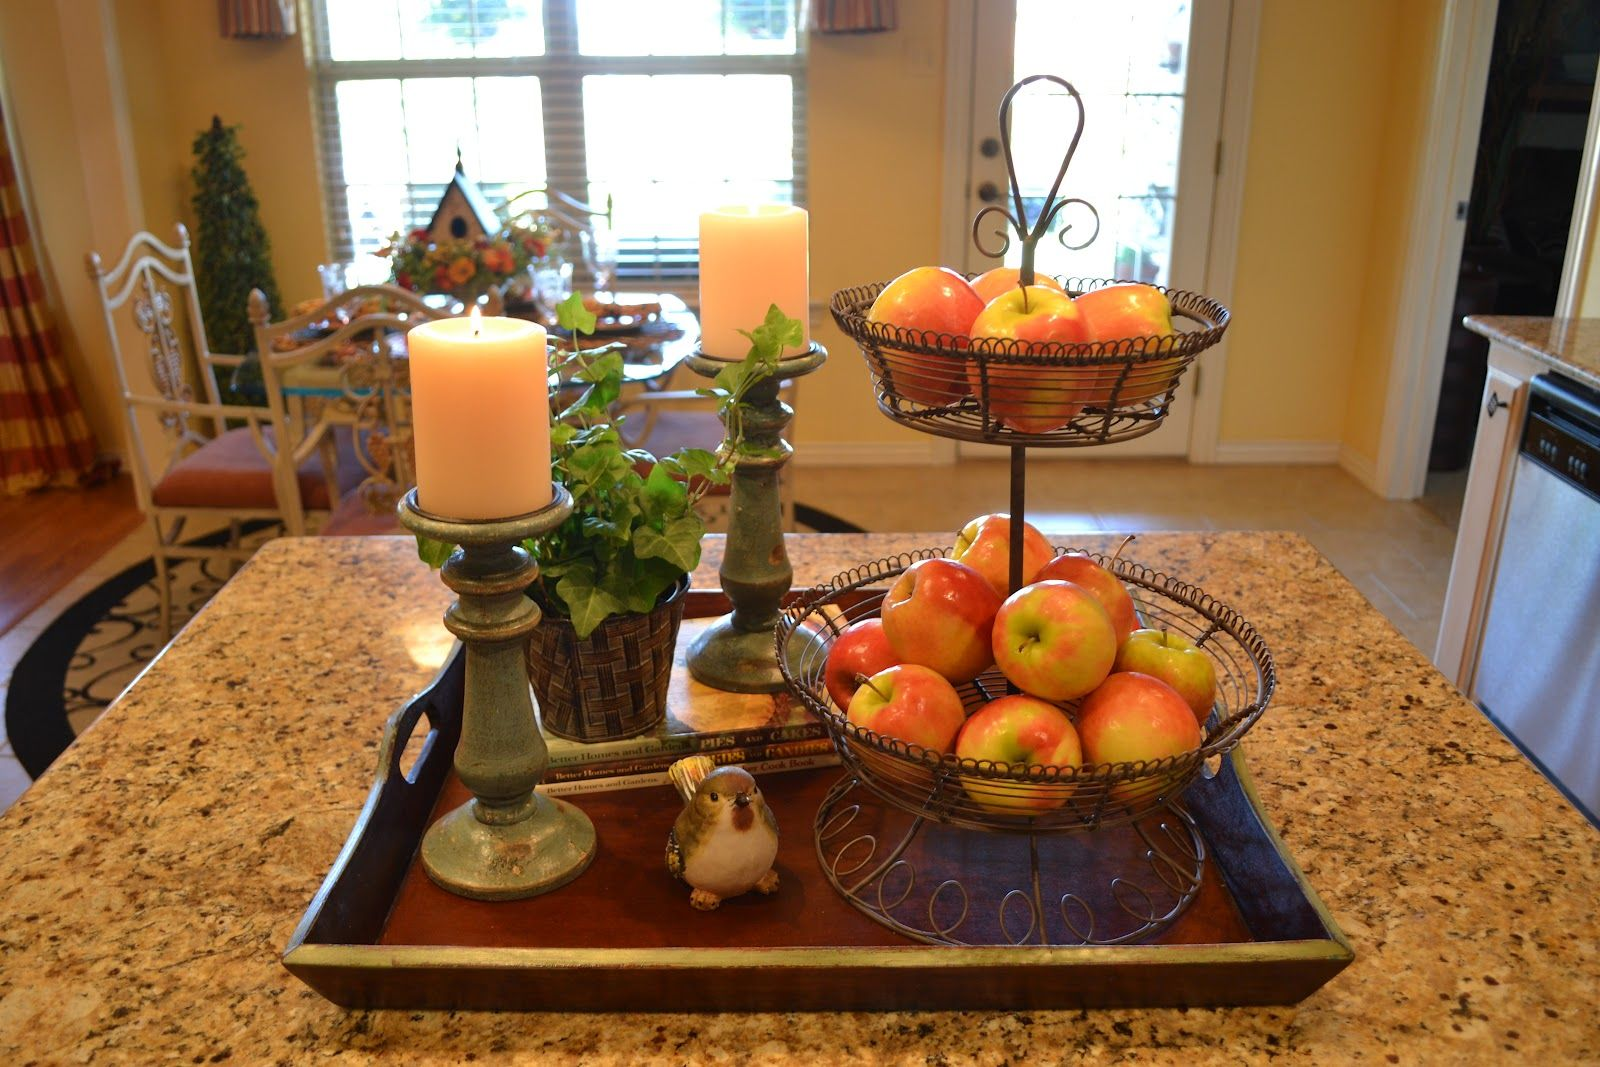 Kitchen Table Centerpieces With Fruits And Candles Kitchen Island Centerpiece Kitchen Island Vignette Kitchen Table Centerpiece